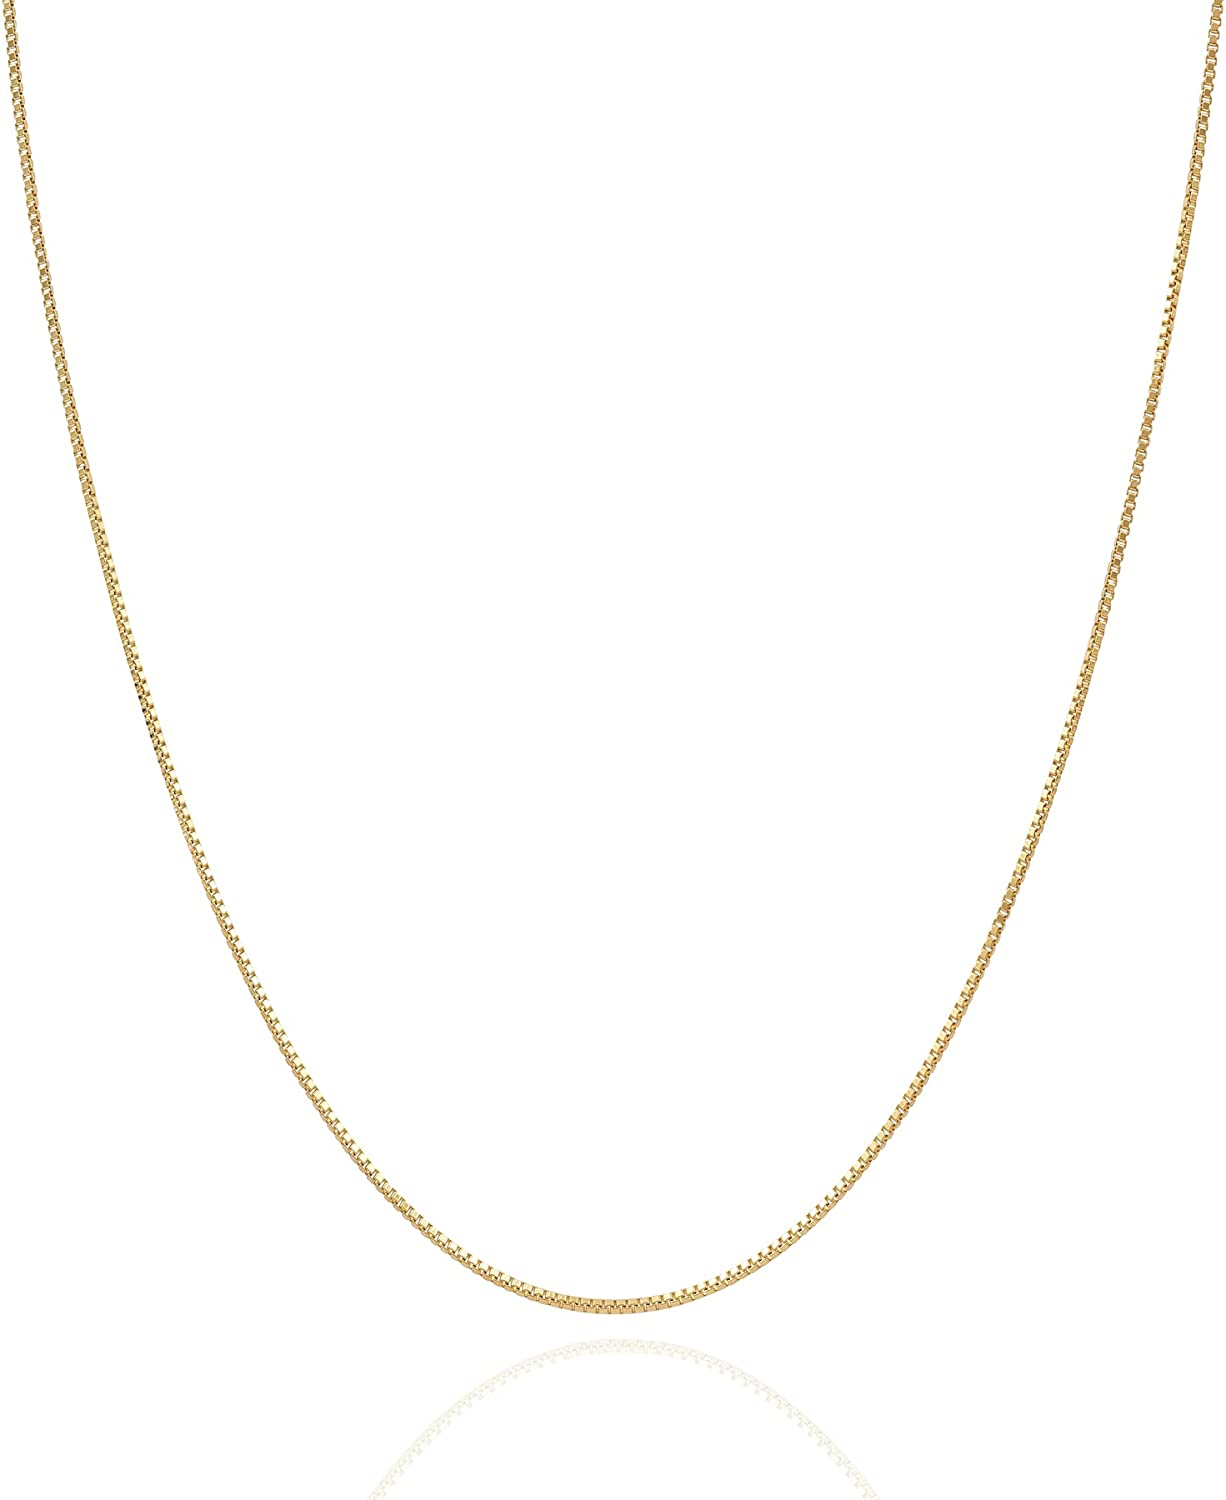 Jewelry Atelier Gold Chain Necklace Collection - 14K Solid Yellow Gold Filled Box Chain Necklaces for Women and Men with Different Sizes (1.0mm or 1.7mm)